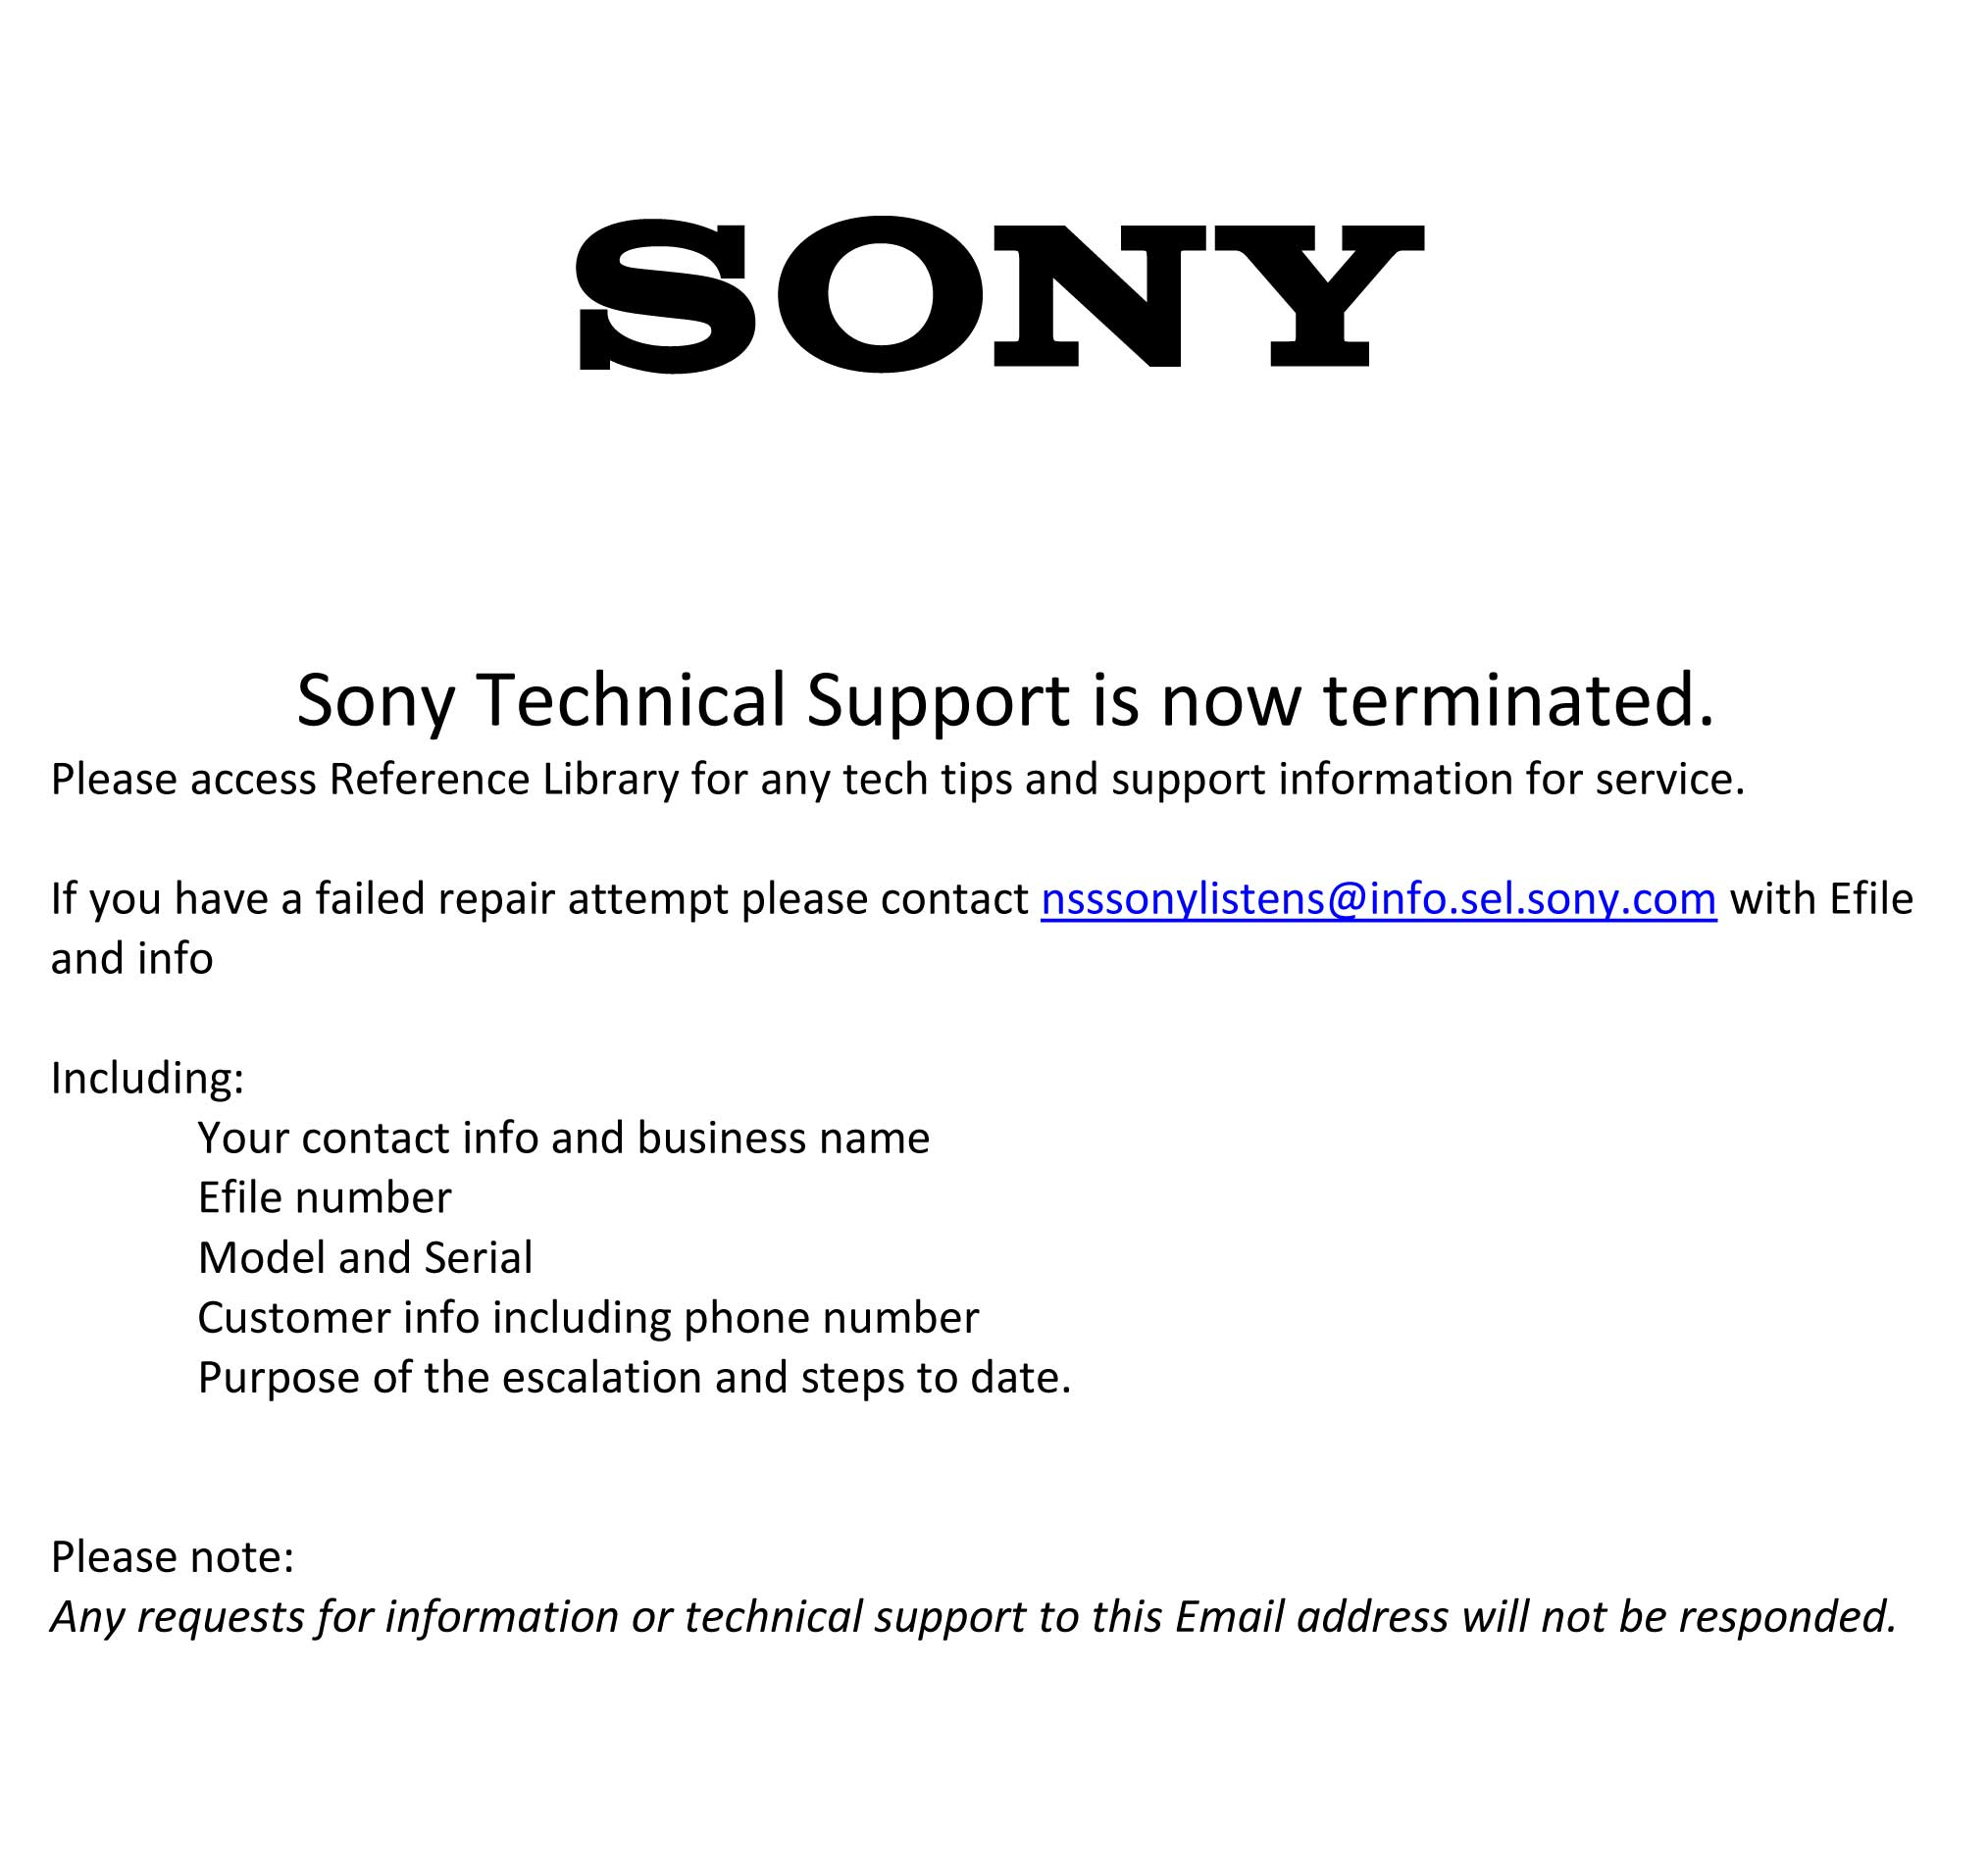 UPDATE: Sony Corporate Responds to Strata-gee's EXCLUSIVE